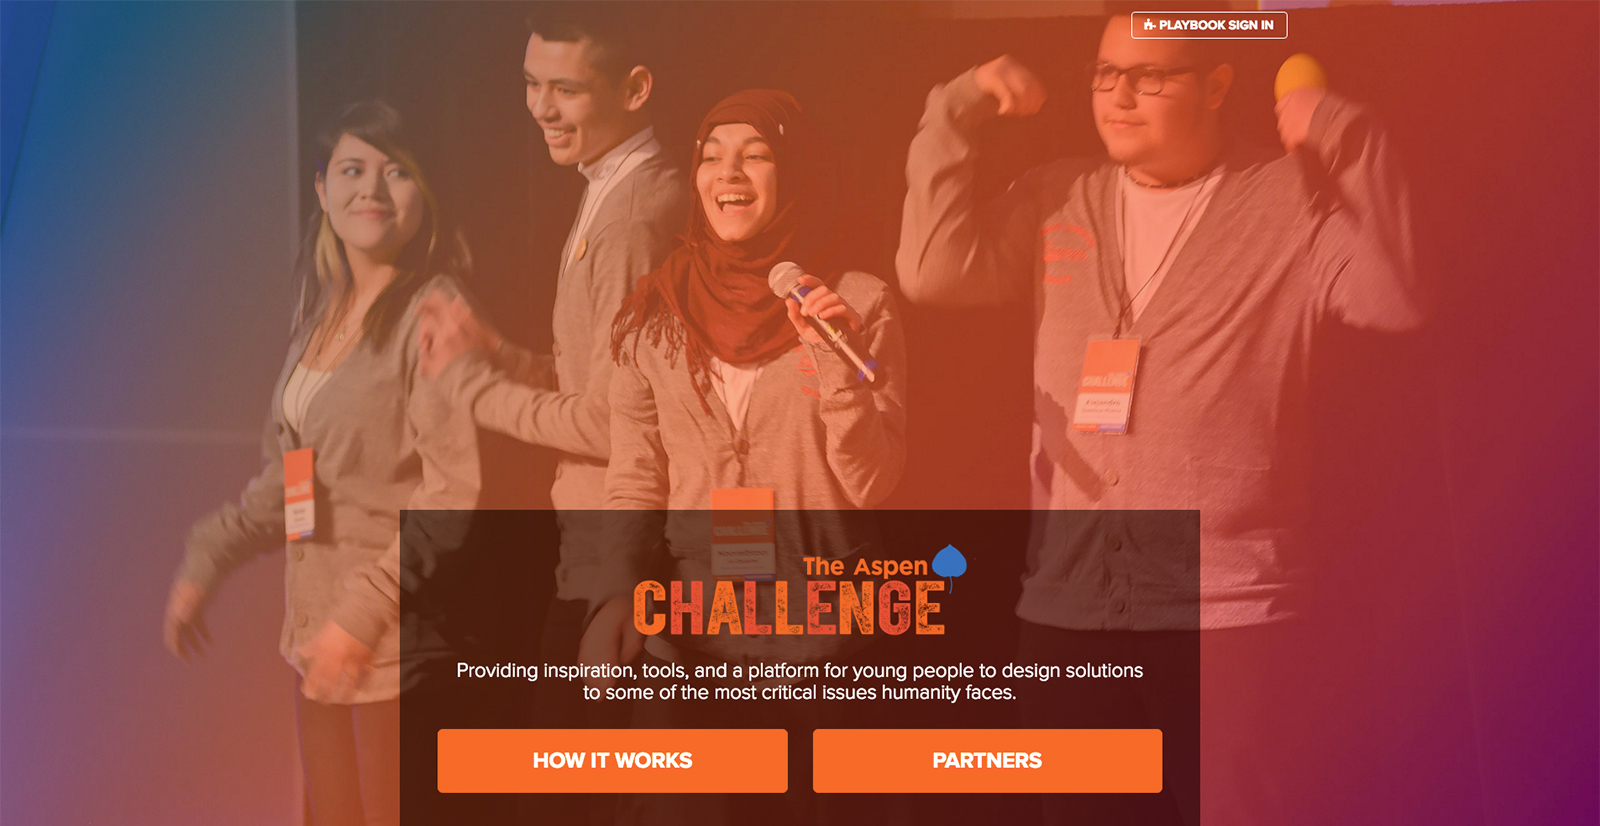 The Aspen Challenge's new website by Veracity Media